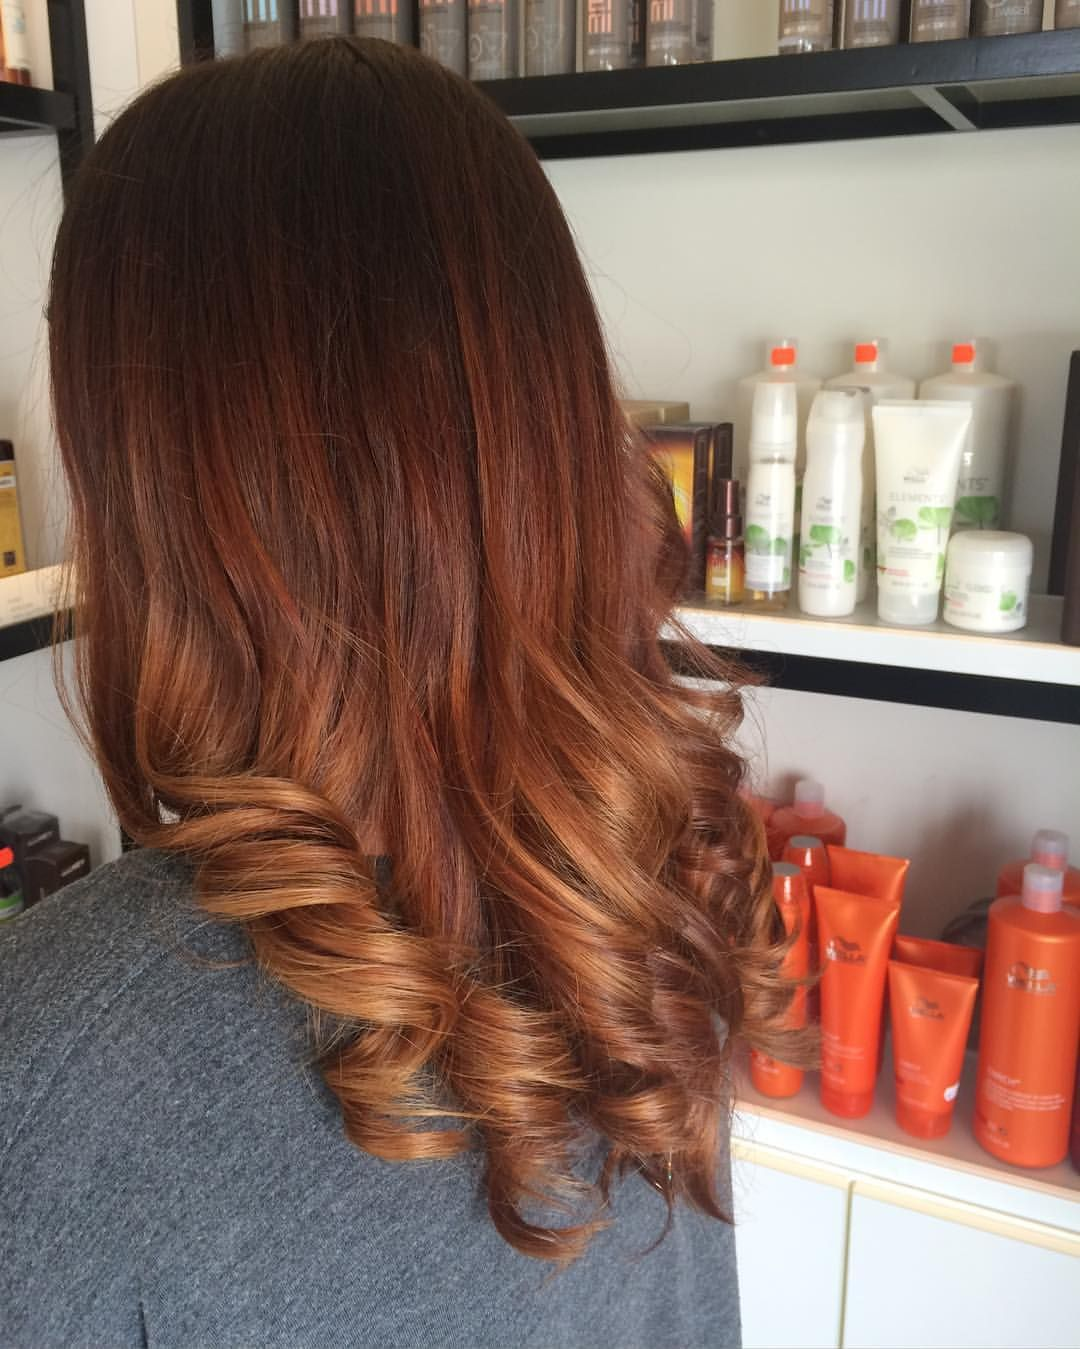 Melting copper balayage! #wellahair #wellalife #copperhair #balayage #freehandpaint @theheadroomnl Credit: stacenicks #copperbalayage